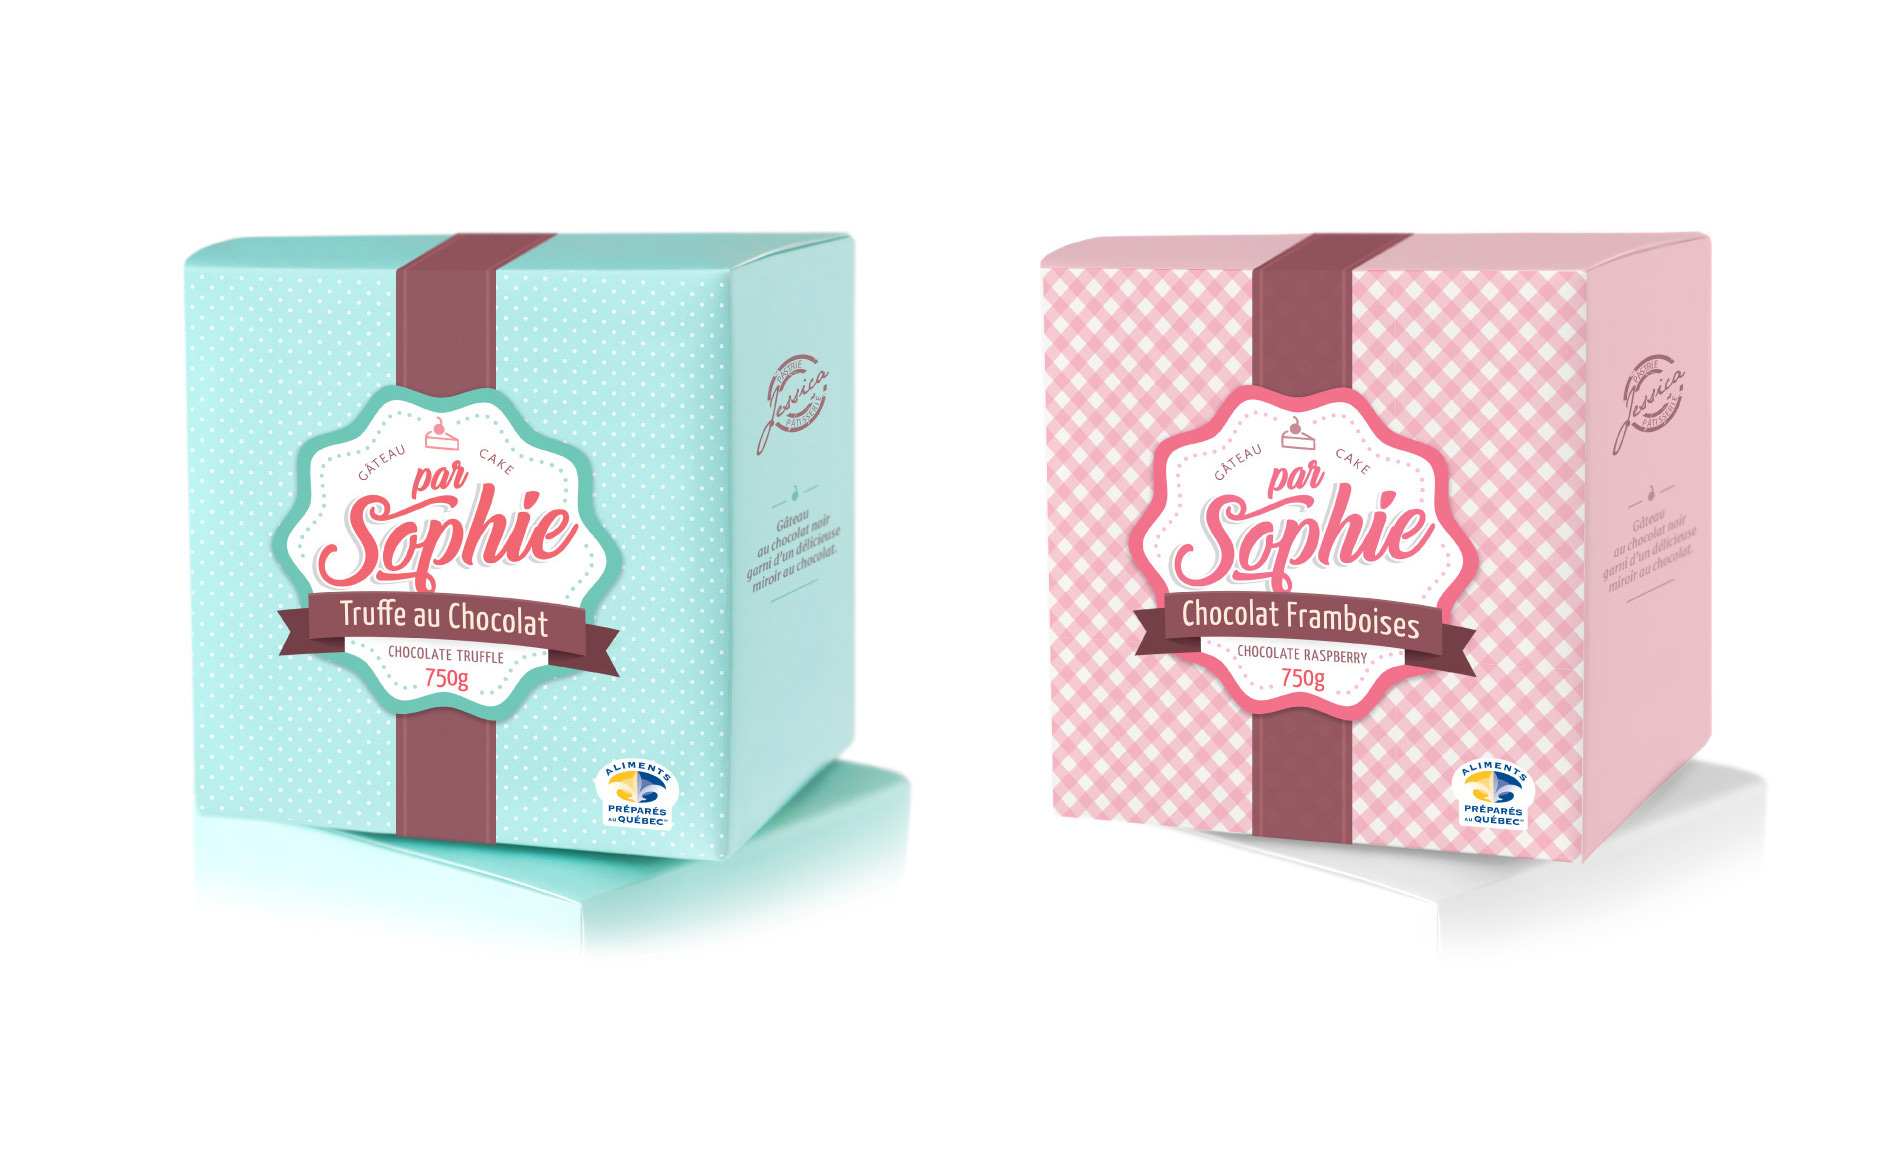 Cakes packaging design